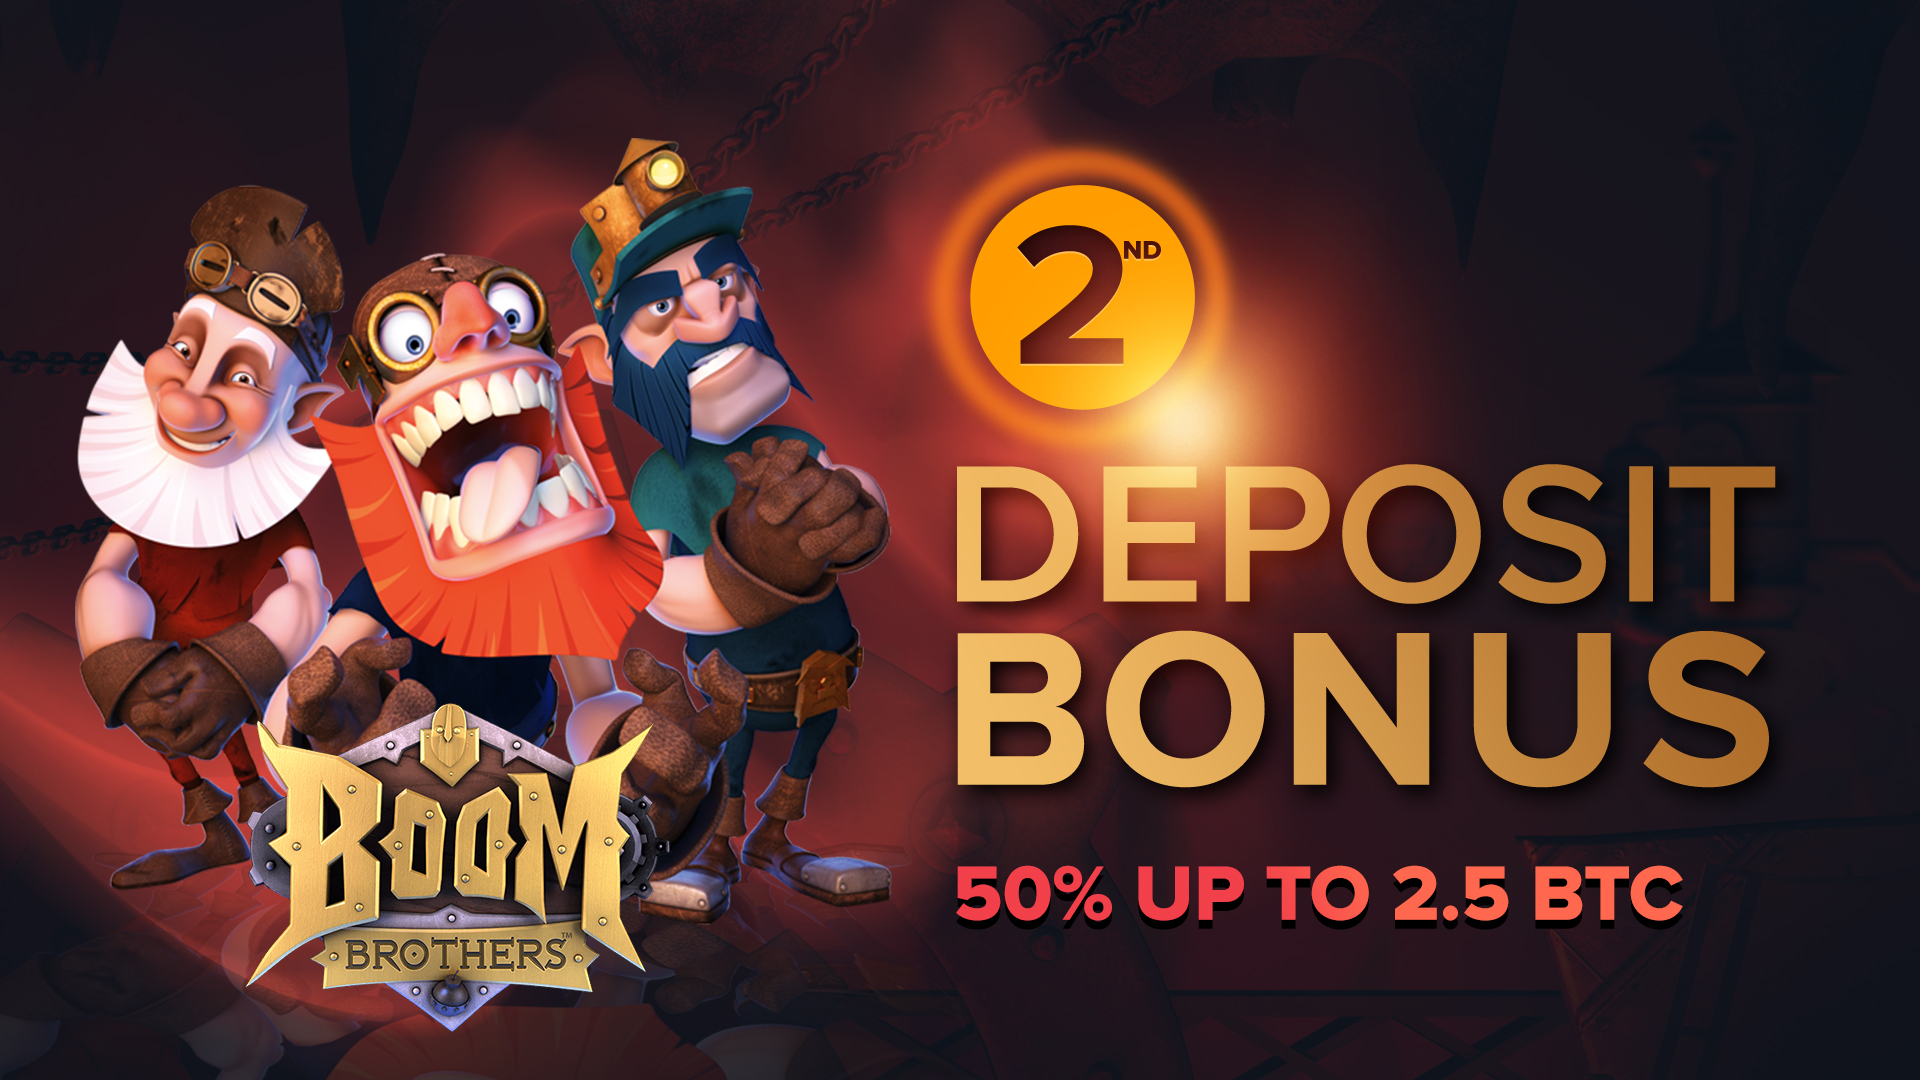 Second Deposit Bonus